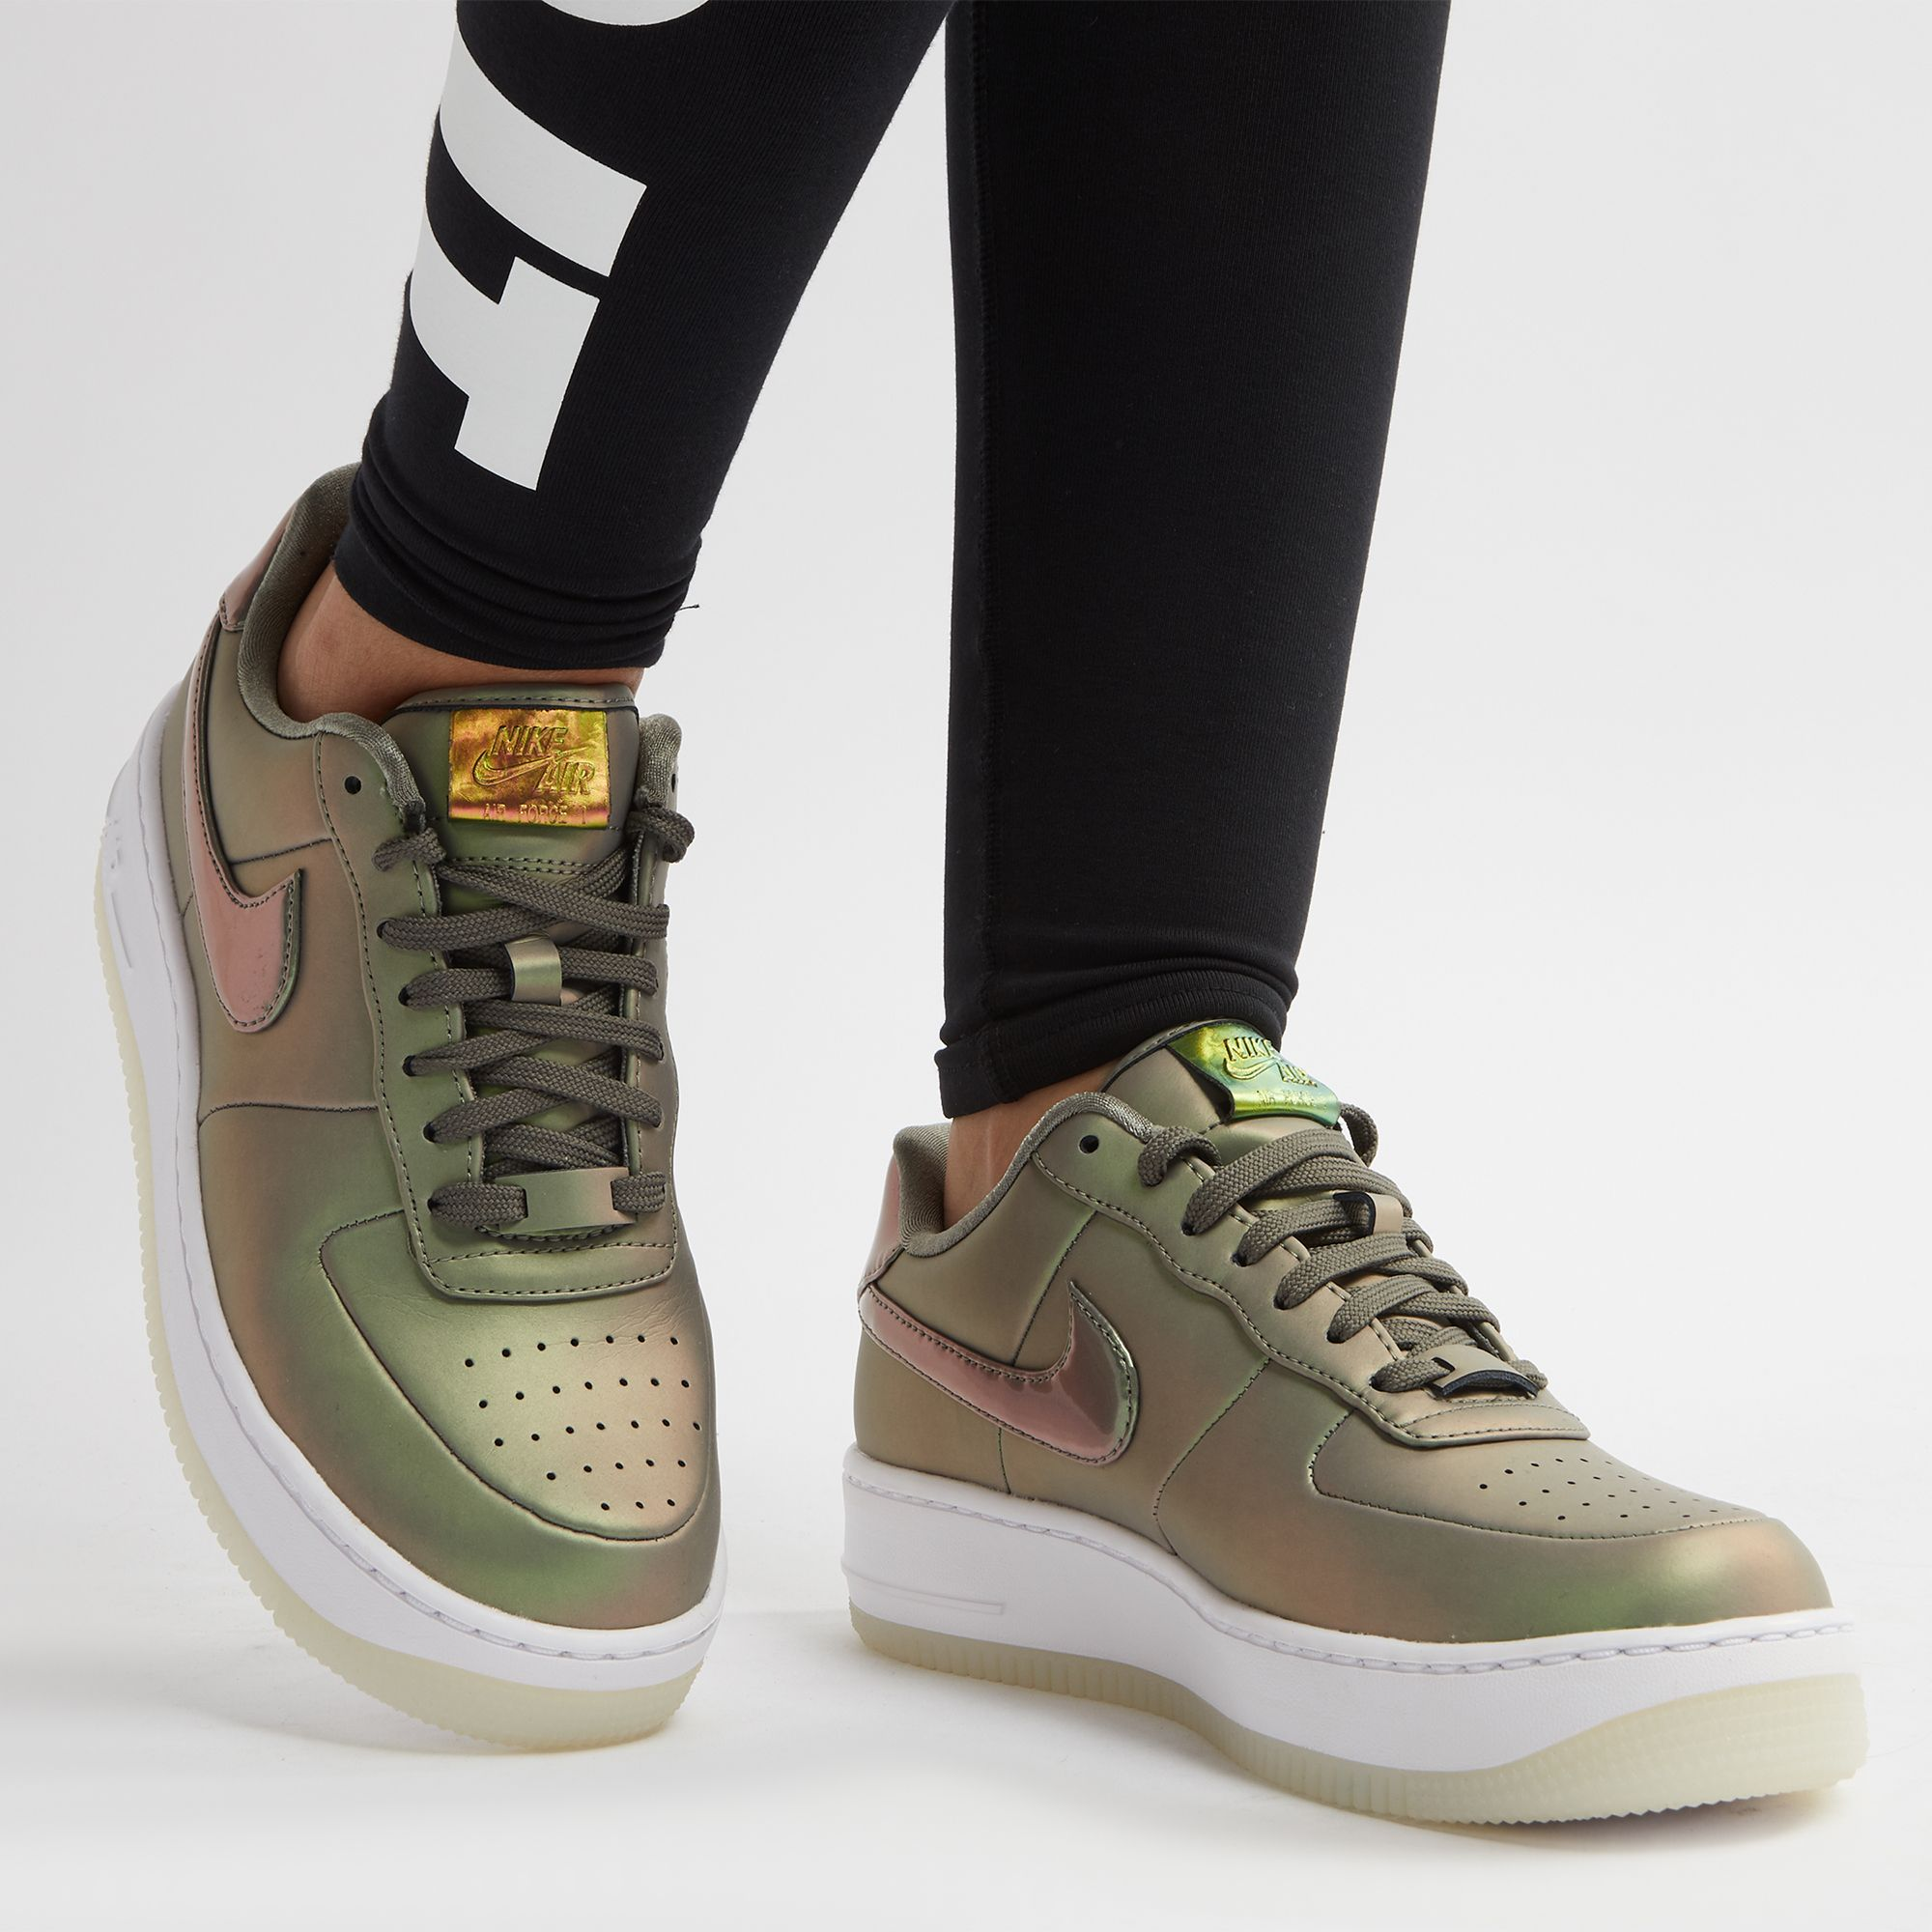 f3e67d5a98 ... promo code for nike air force 1 upstep premium lx shoe a52f3 d48e6